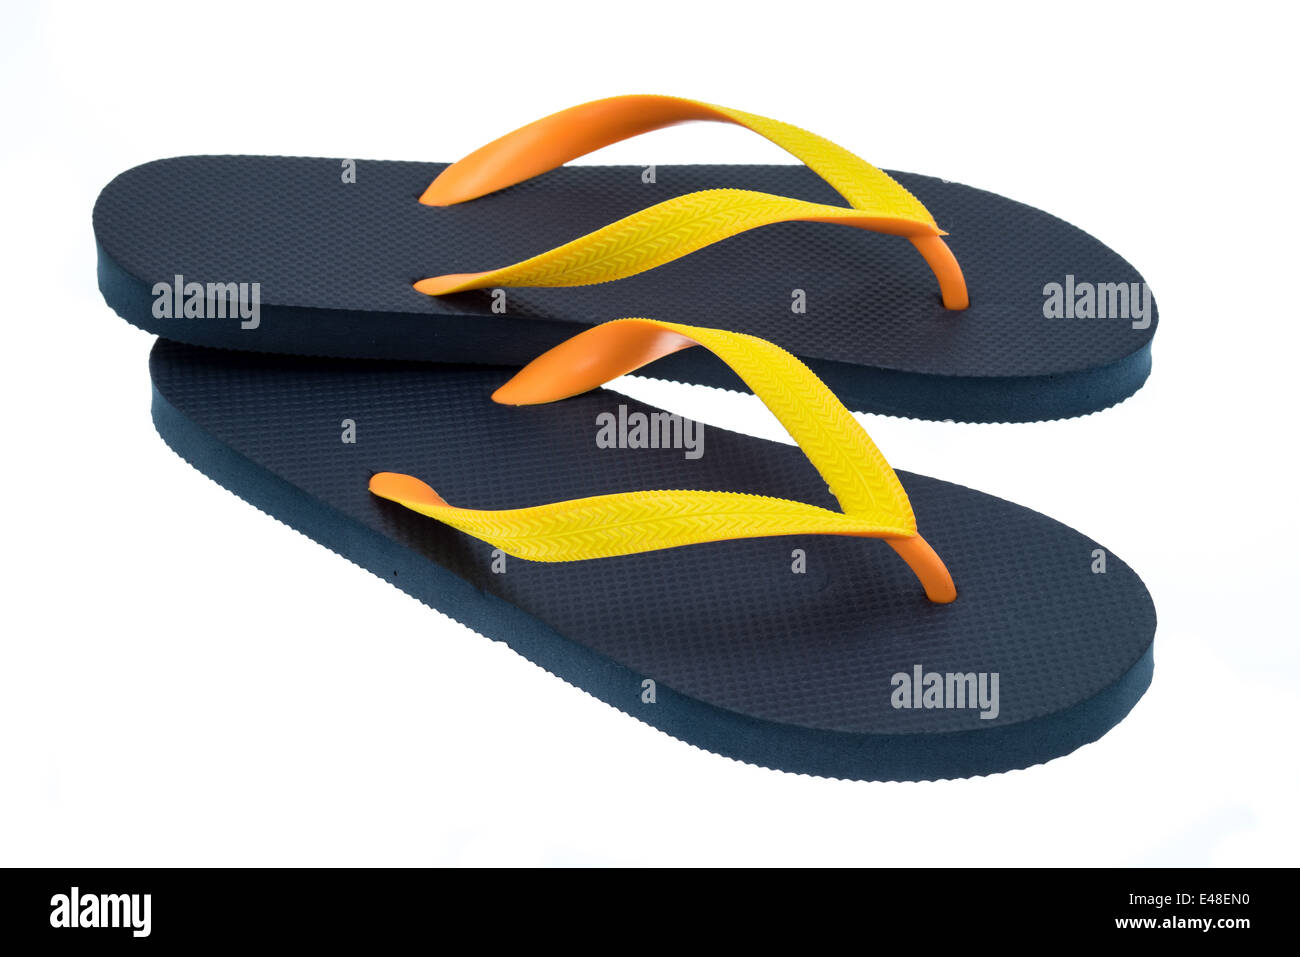 58e213604378d Black thong type flip-flops with orange and yellow straps - studio shot  with a white background